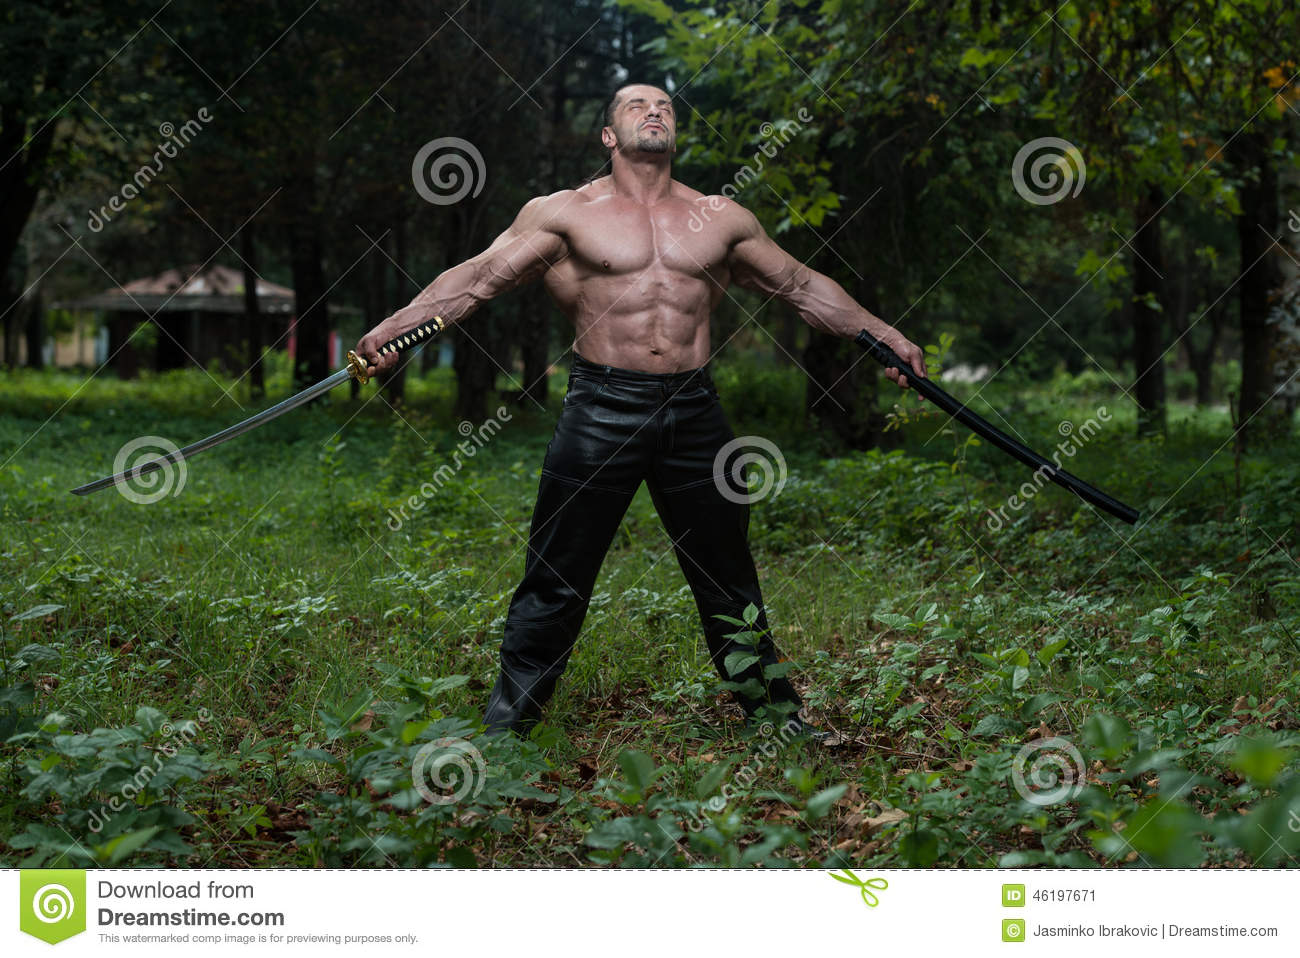 image Sword fighting hero gets to fuck sexy savannah outdoors as his prize